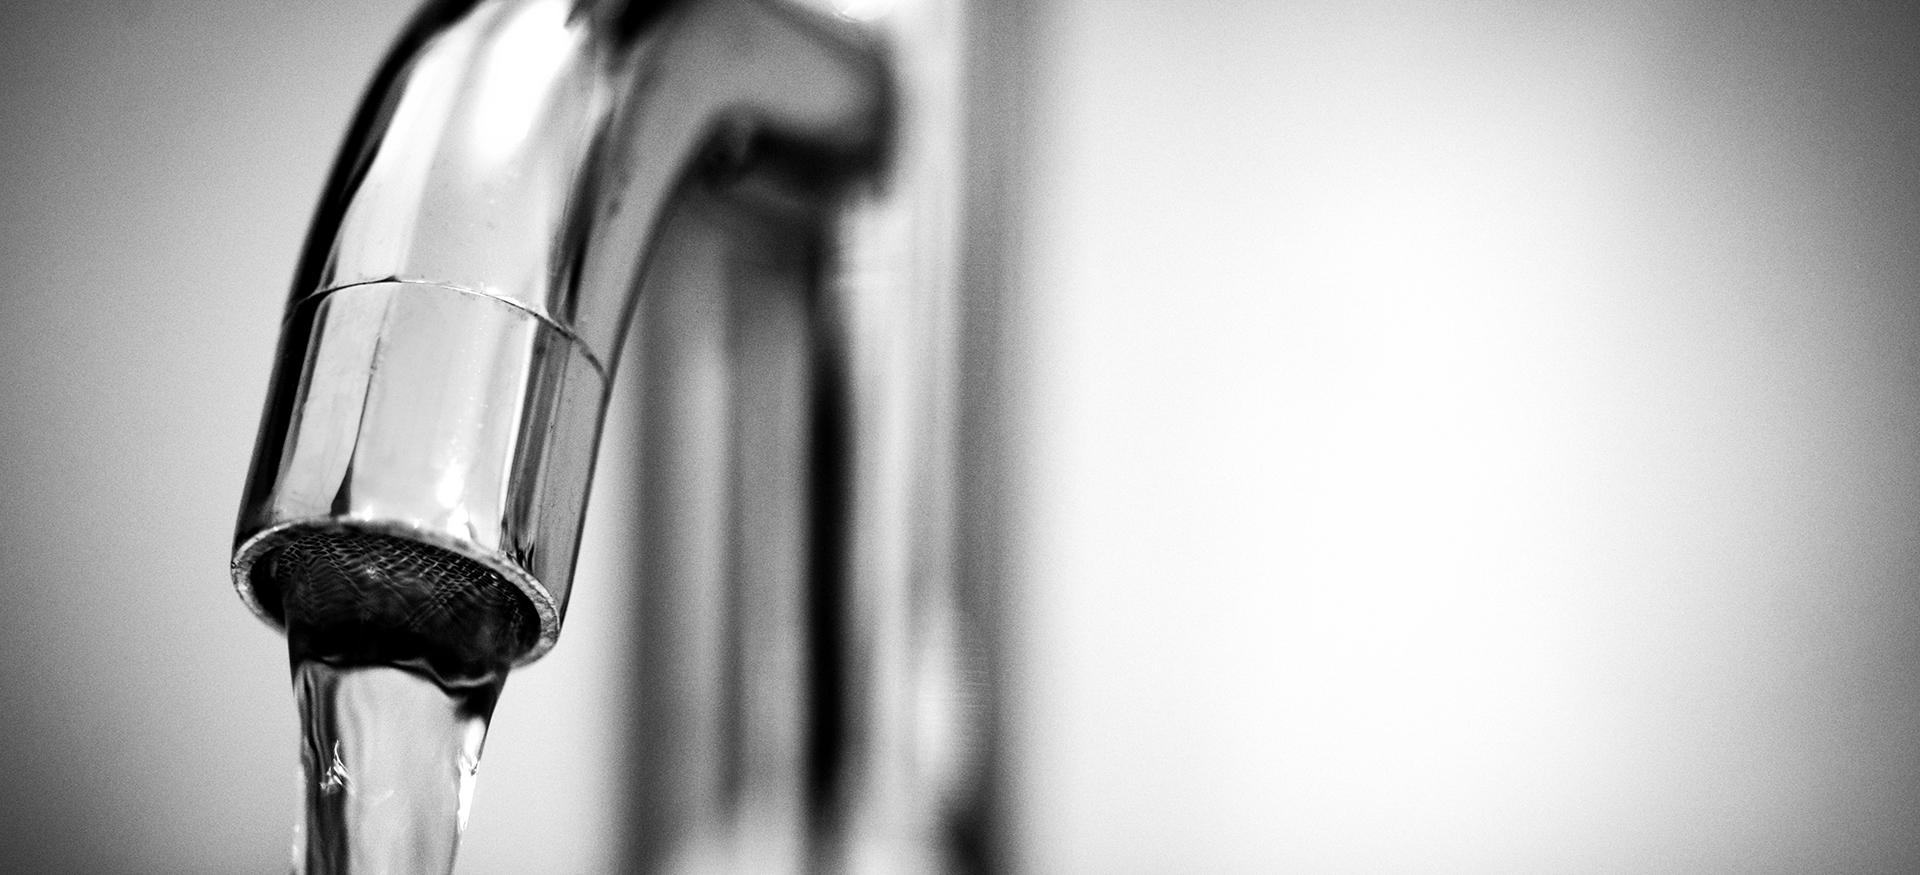 newly installed faucet